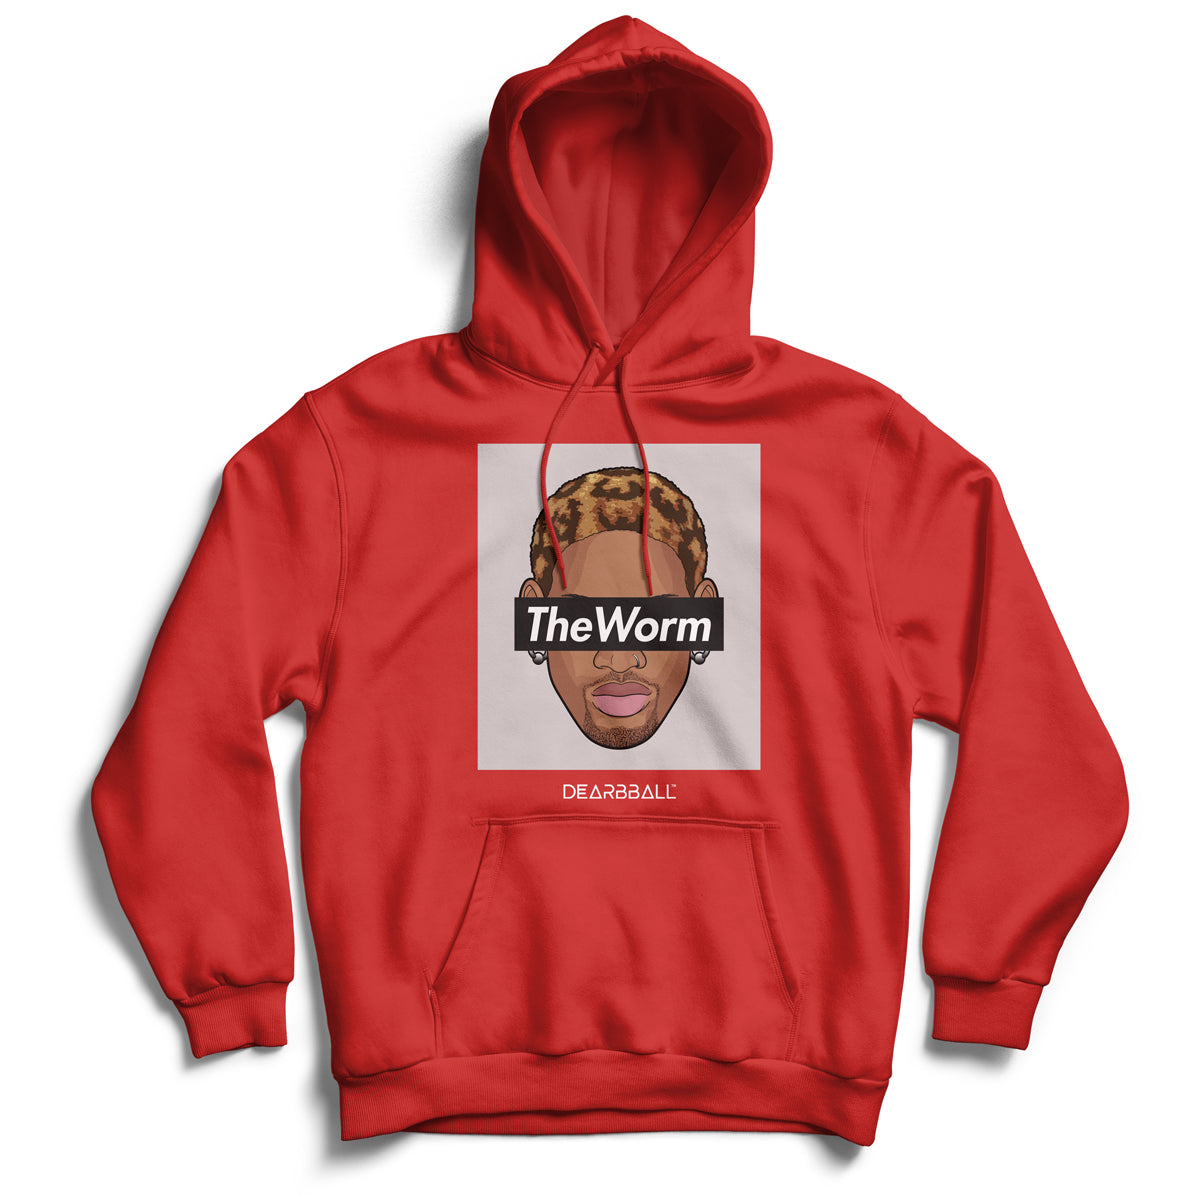 Dennis_rodman_hoodie_worm_tee_chicago_bulls_legends_nba_dunk_dearbball_red